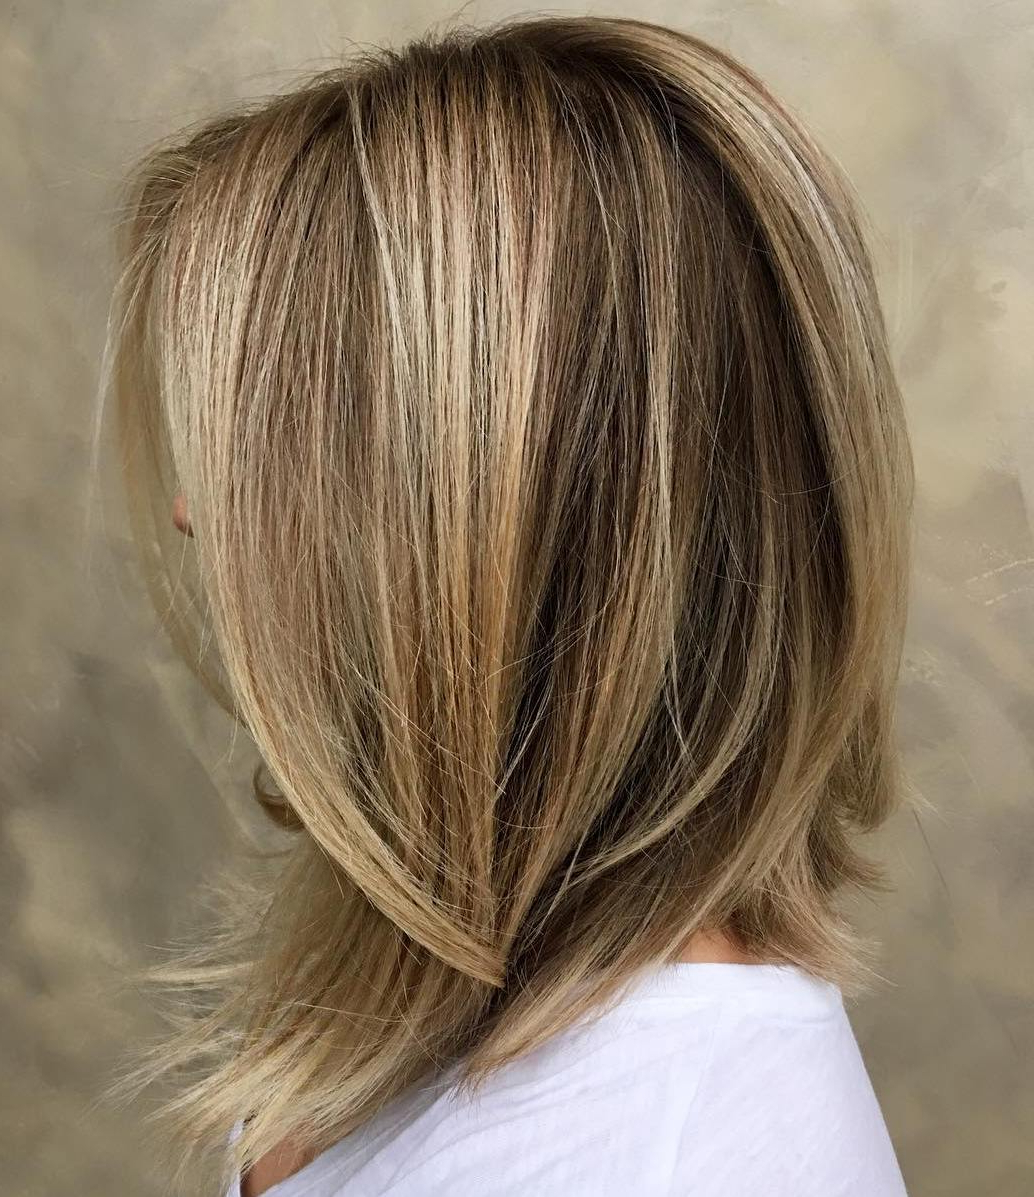 60 Inspiring Long Bob Hairstyles And Lob Haircuts 2018 Throughout Wavy Bronde Bob Shag Haircuts (View 11 of 20)